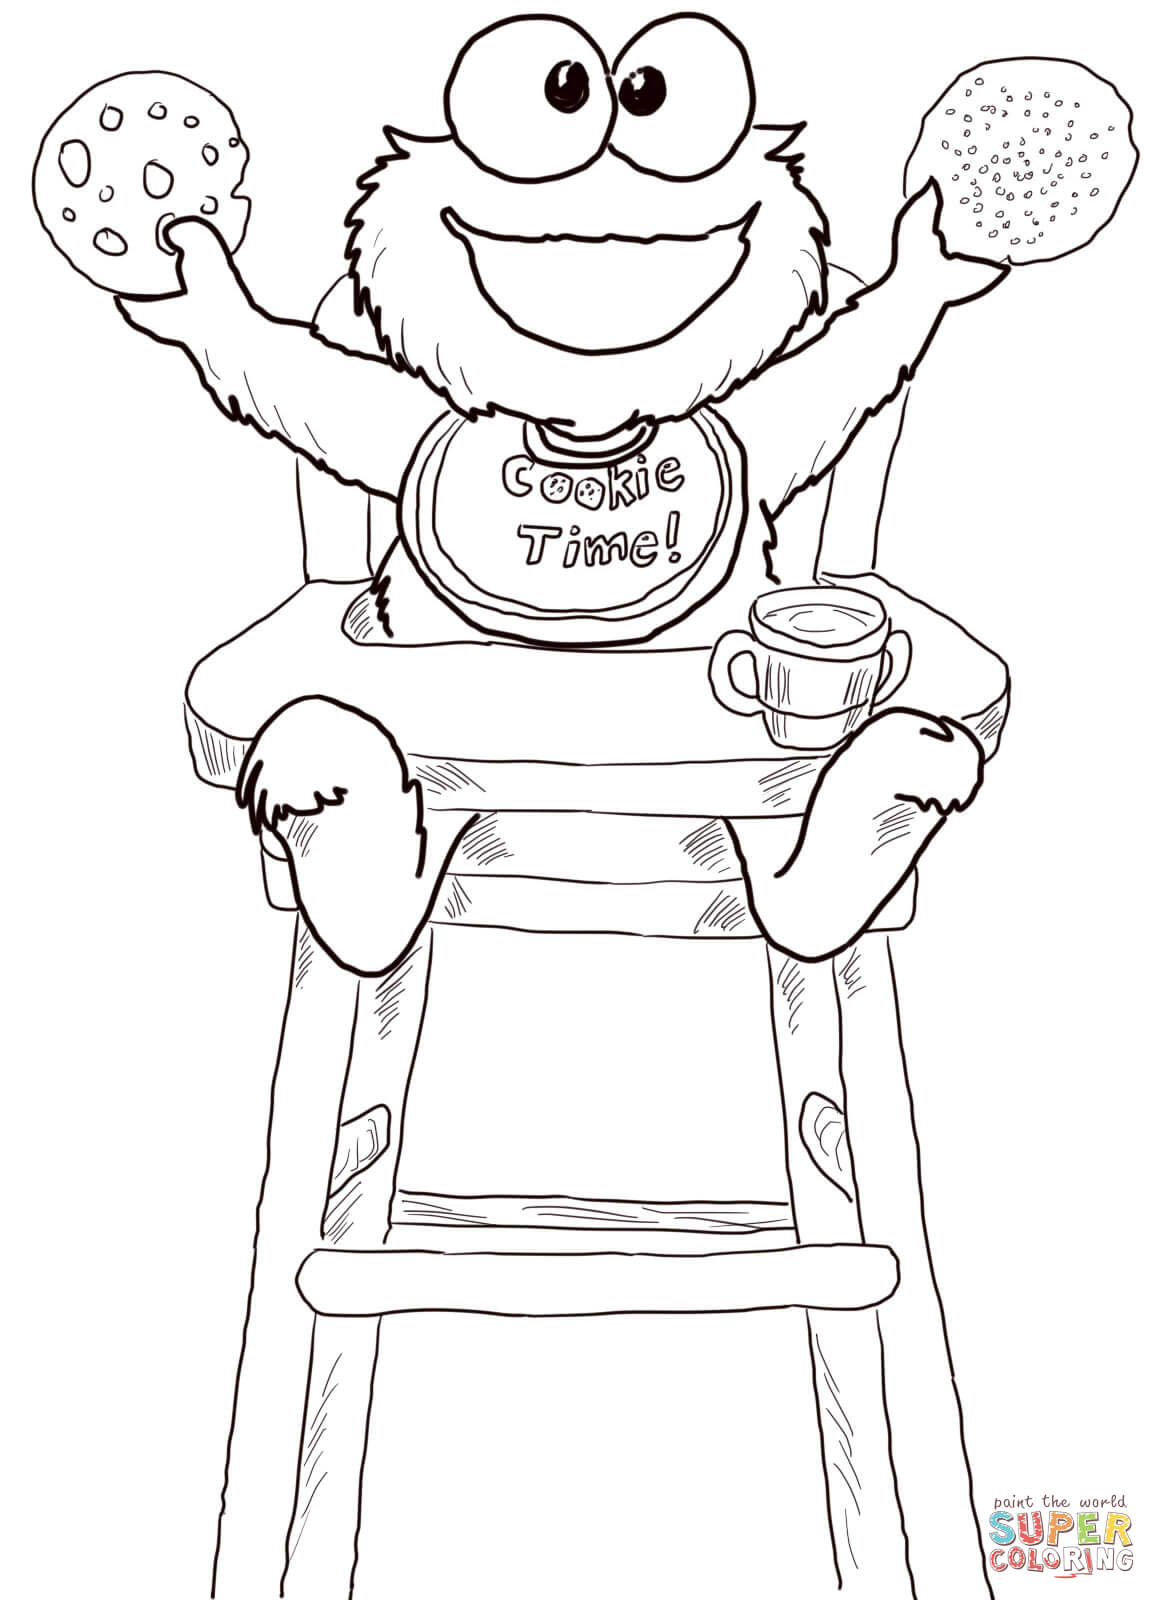 Printable Coloring Pages Of The Cookie Monster